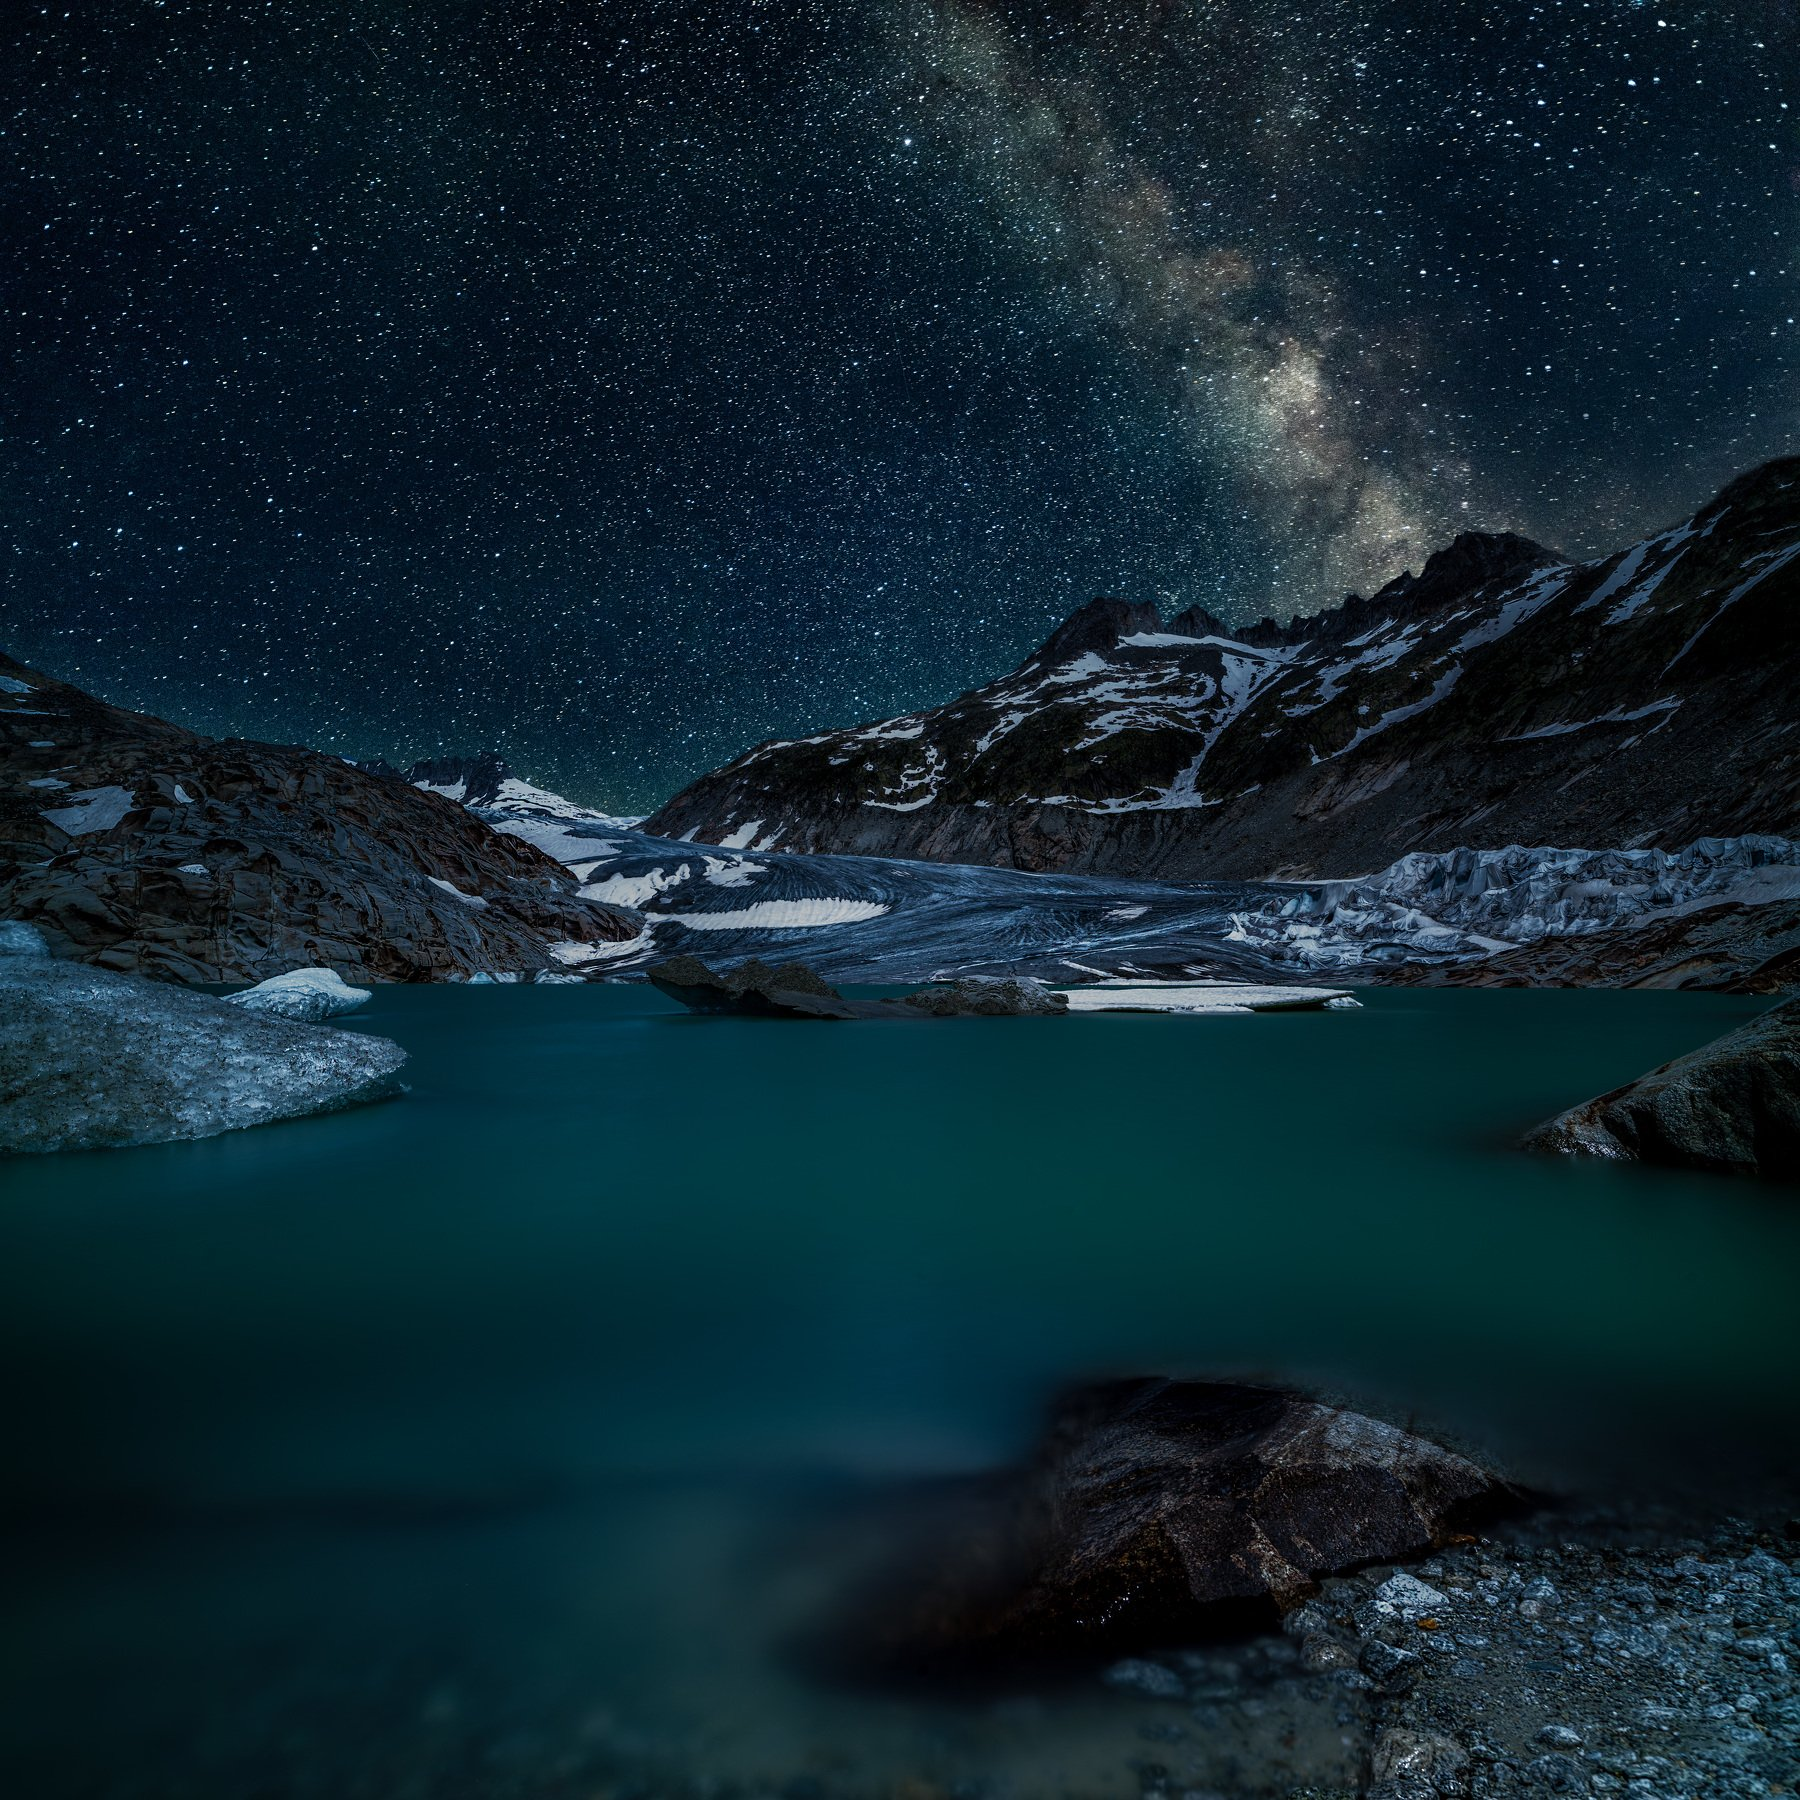 switzerland,rhone glacier,long exposure,stars,lake,aisbergs,stone,mountains,glatcier, Felix Ostapenko